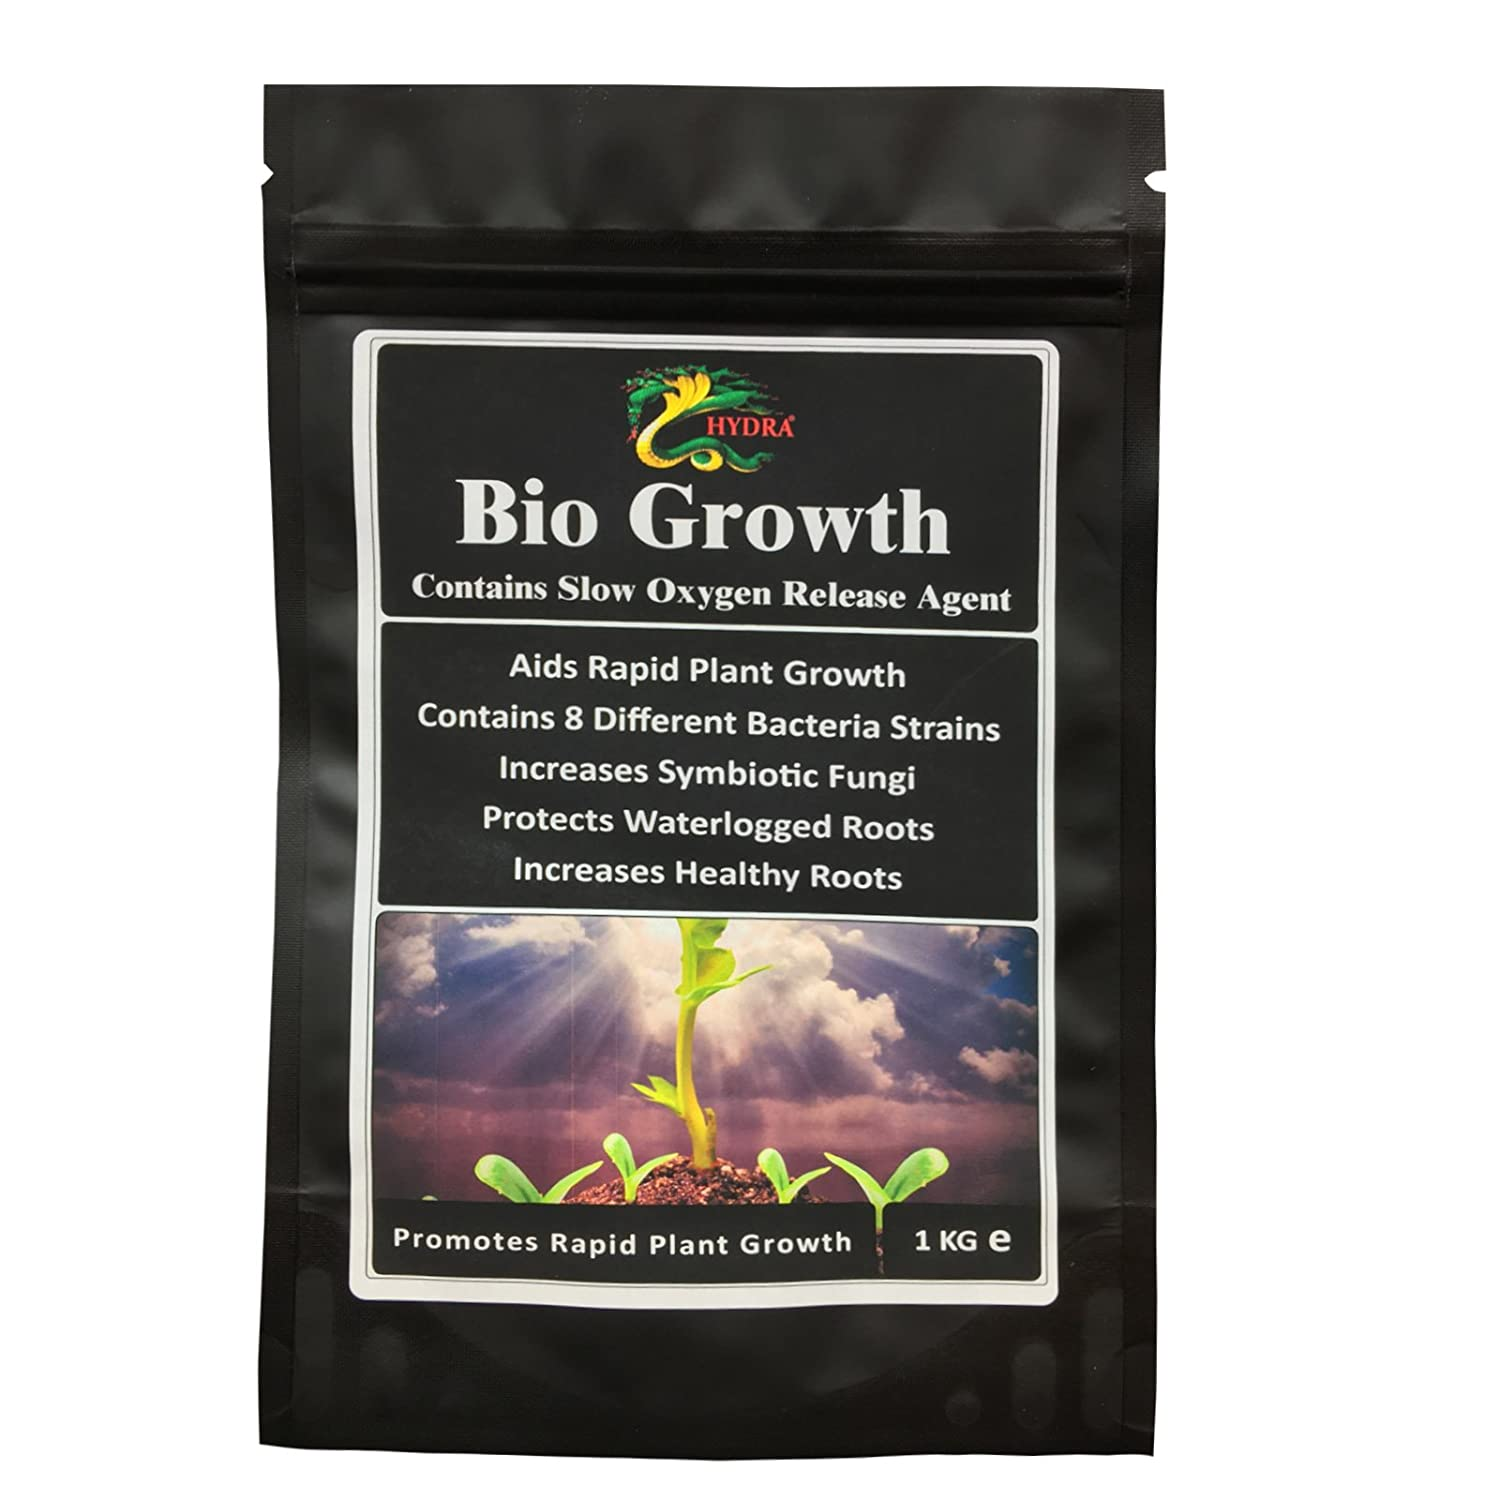 HYDRA BIO GROWTH-1KG-Bioremediation of Soil-Maintain and Protect Healthy Plant Roots Hydra International Ltd